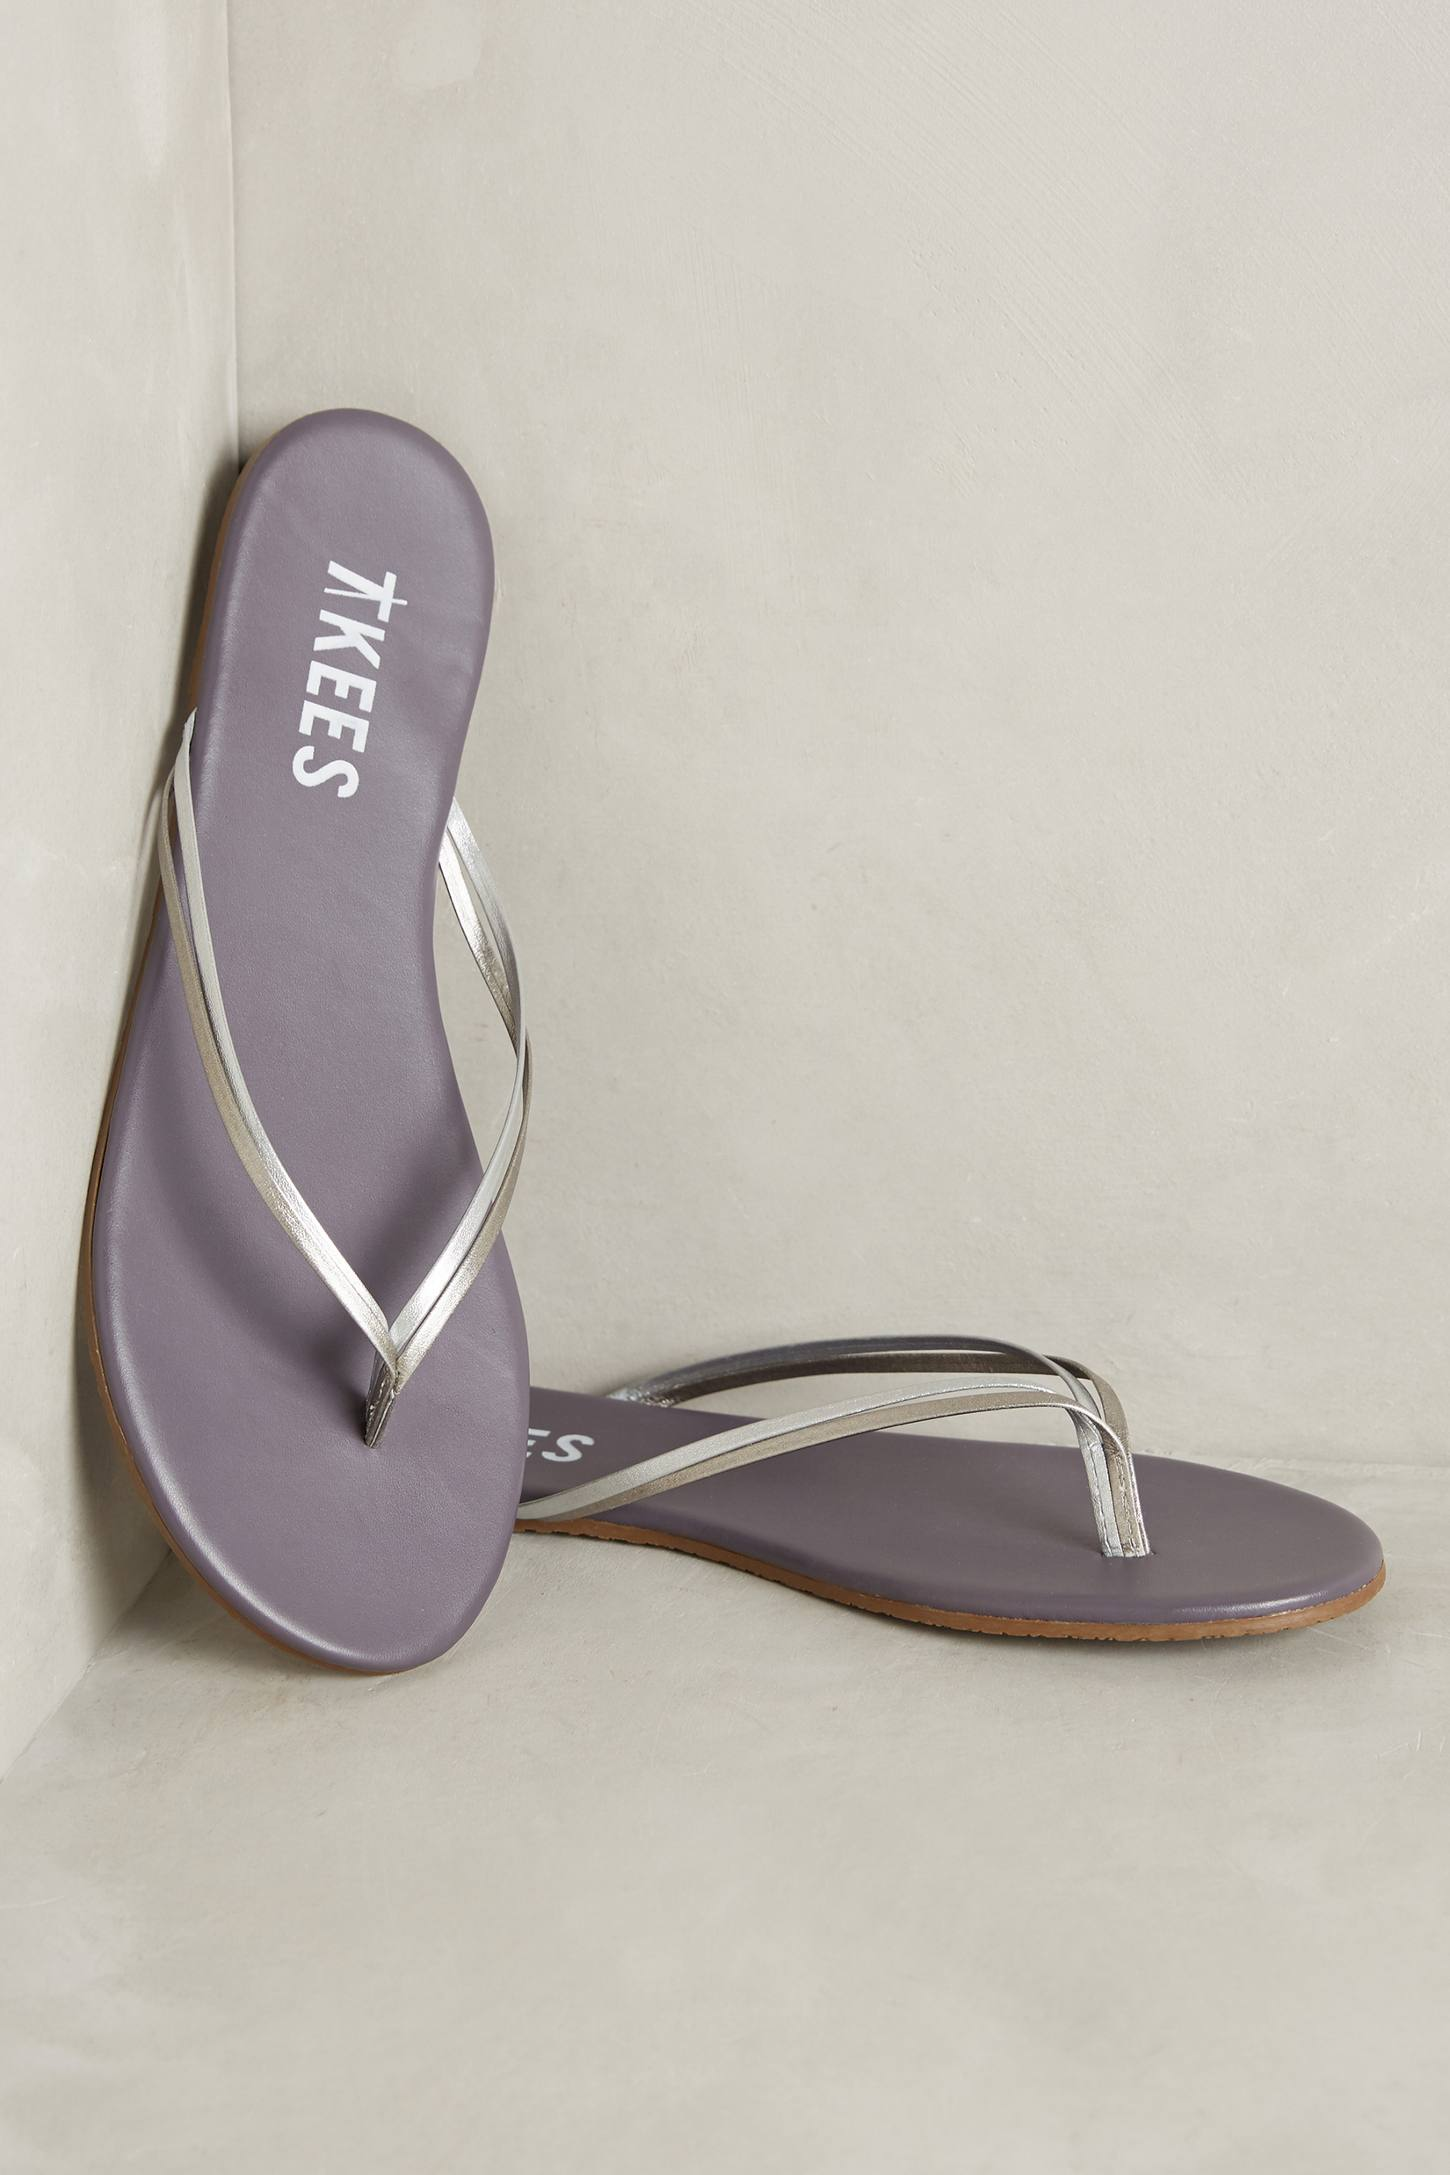 Slide View: 1: Tkees Duos Leather Sandals